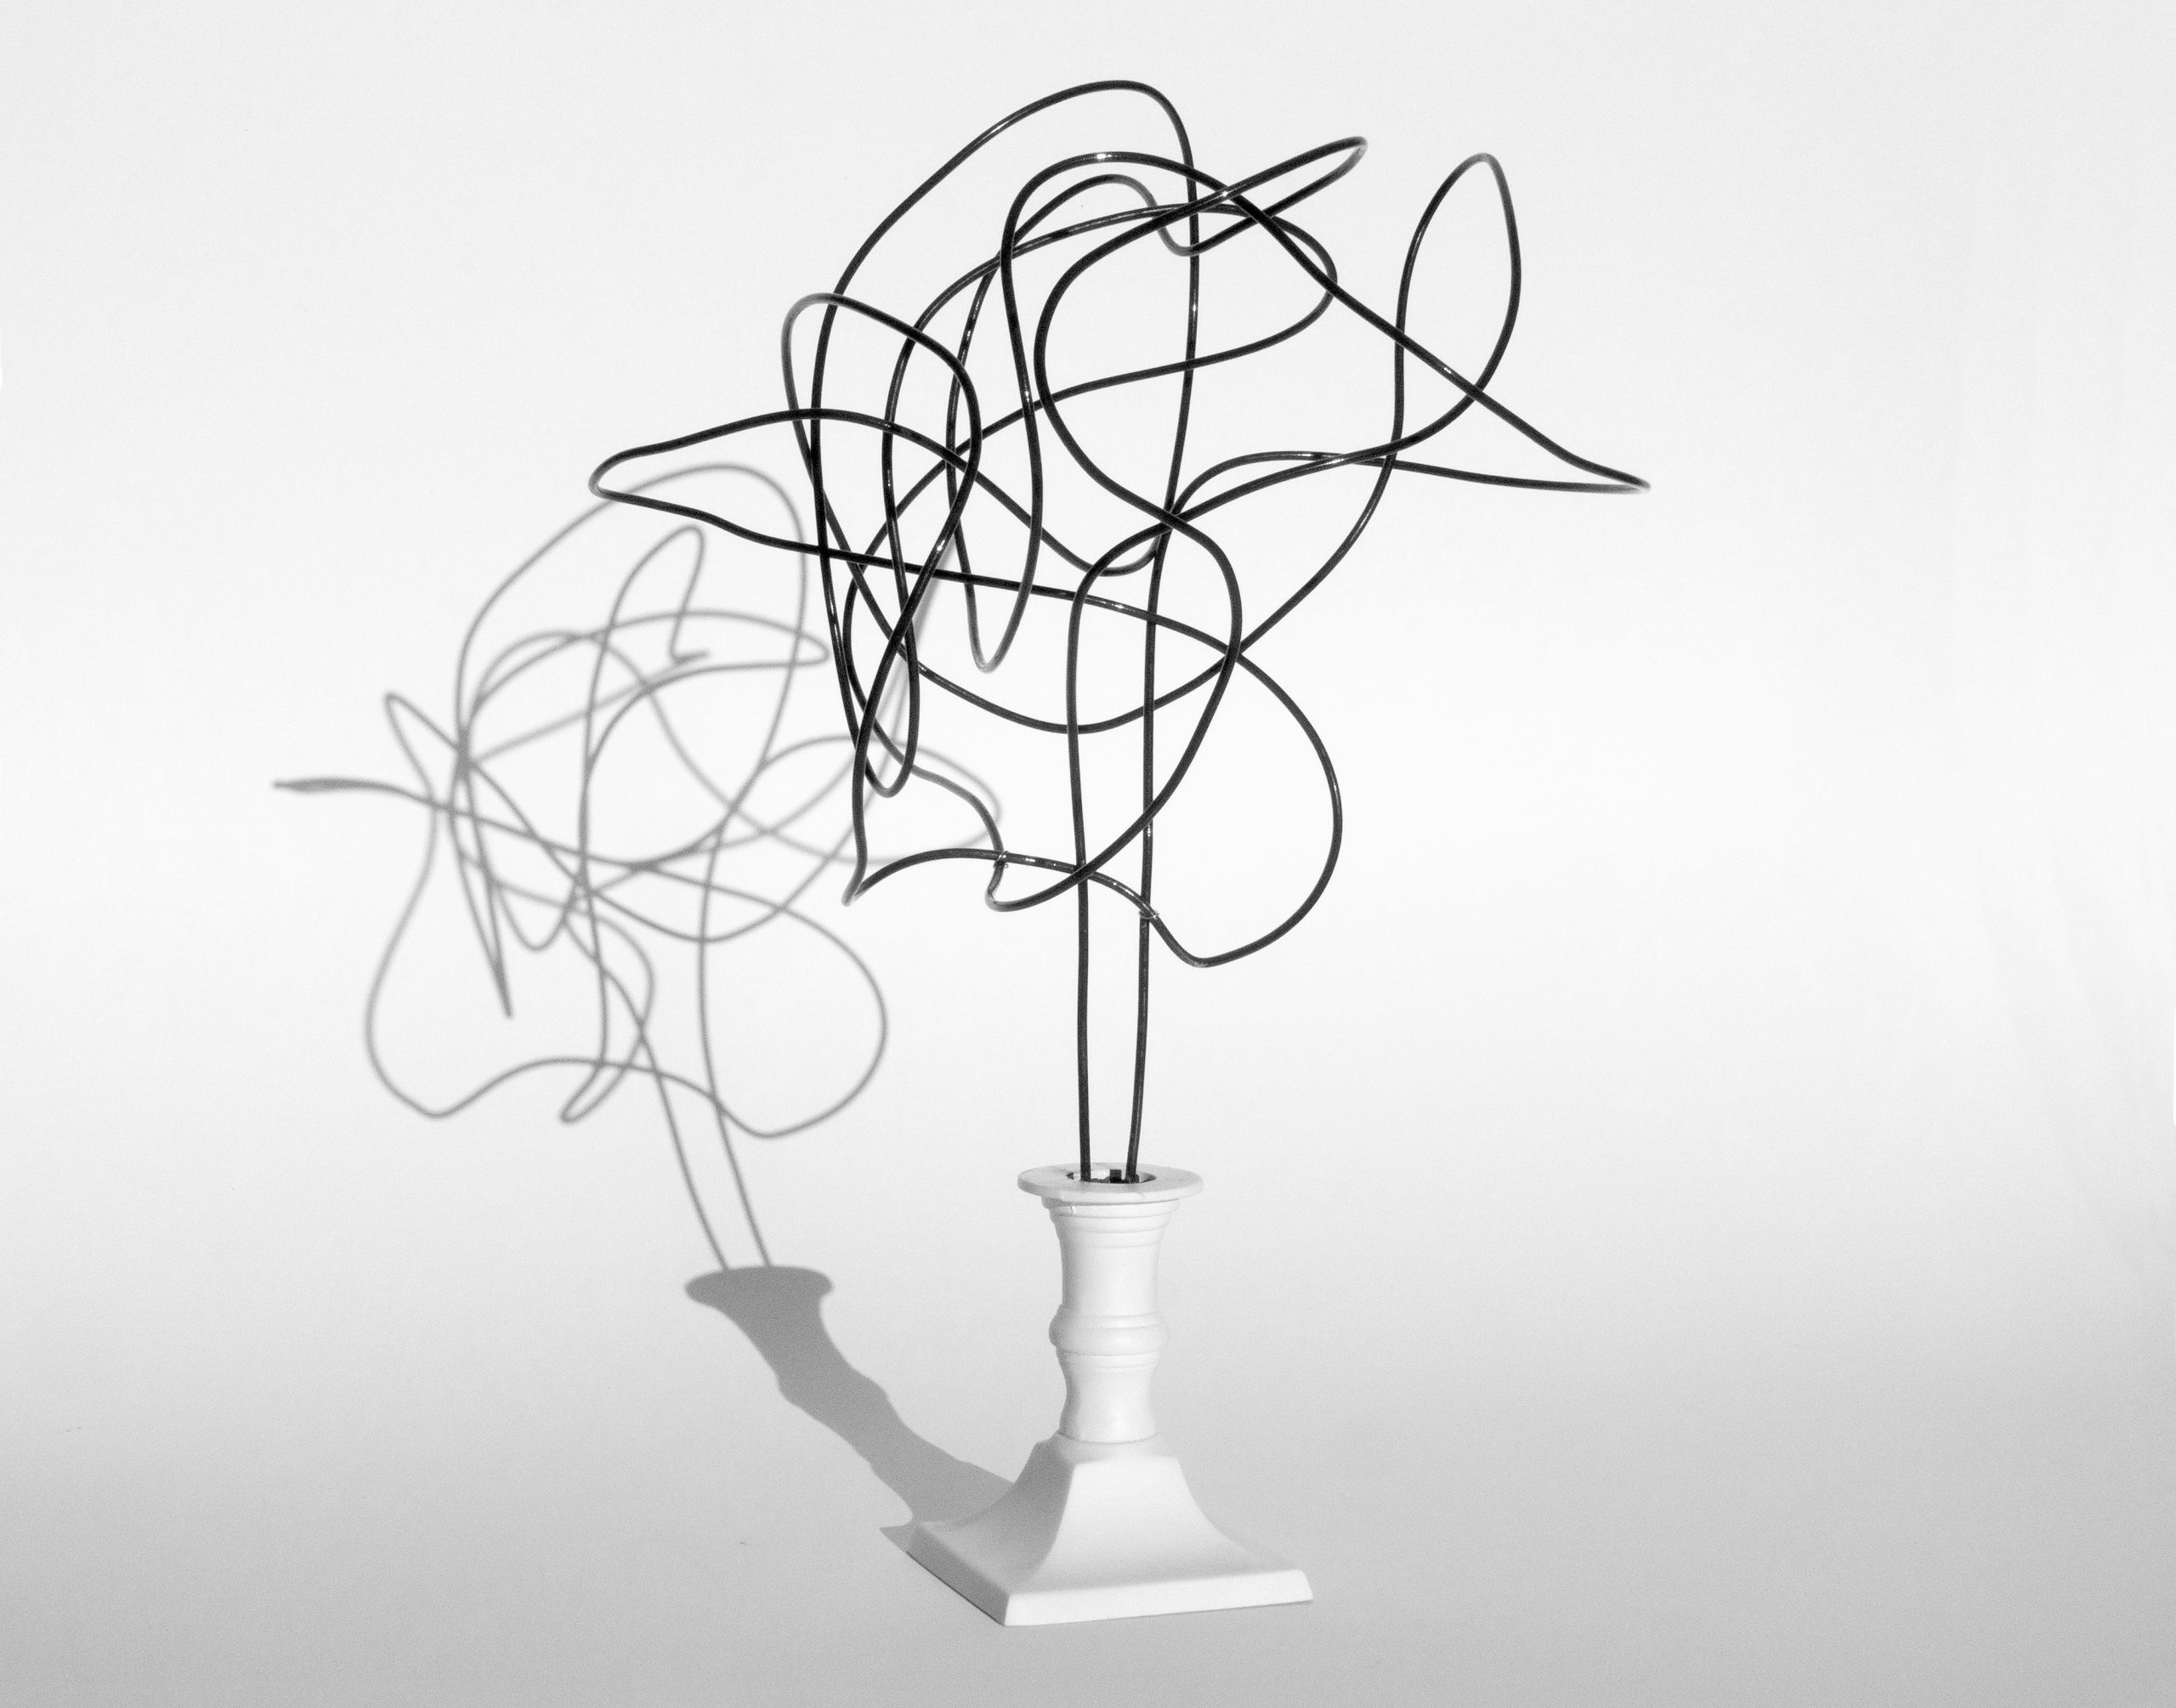 Maquettes for large-scale sculpture